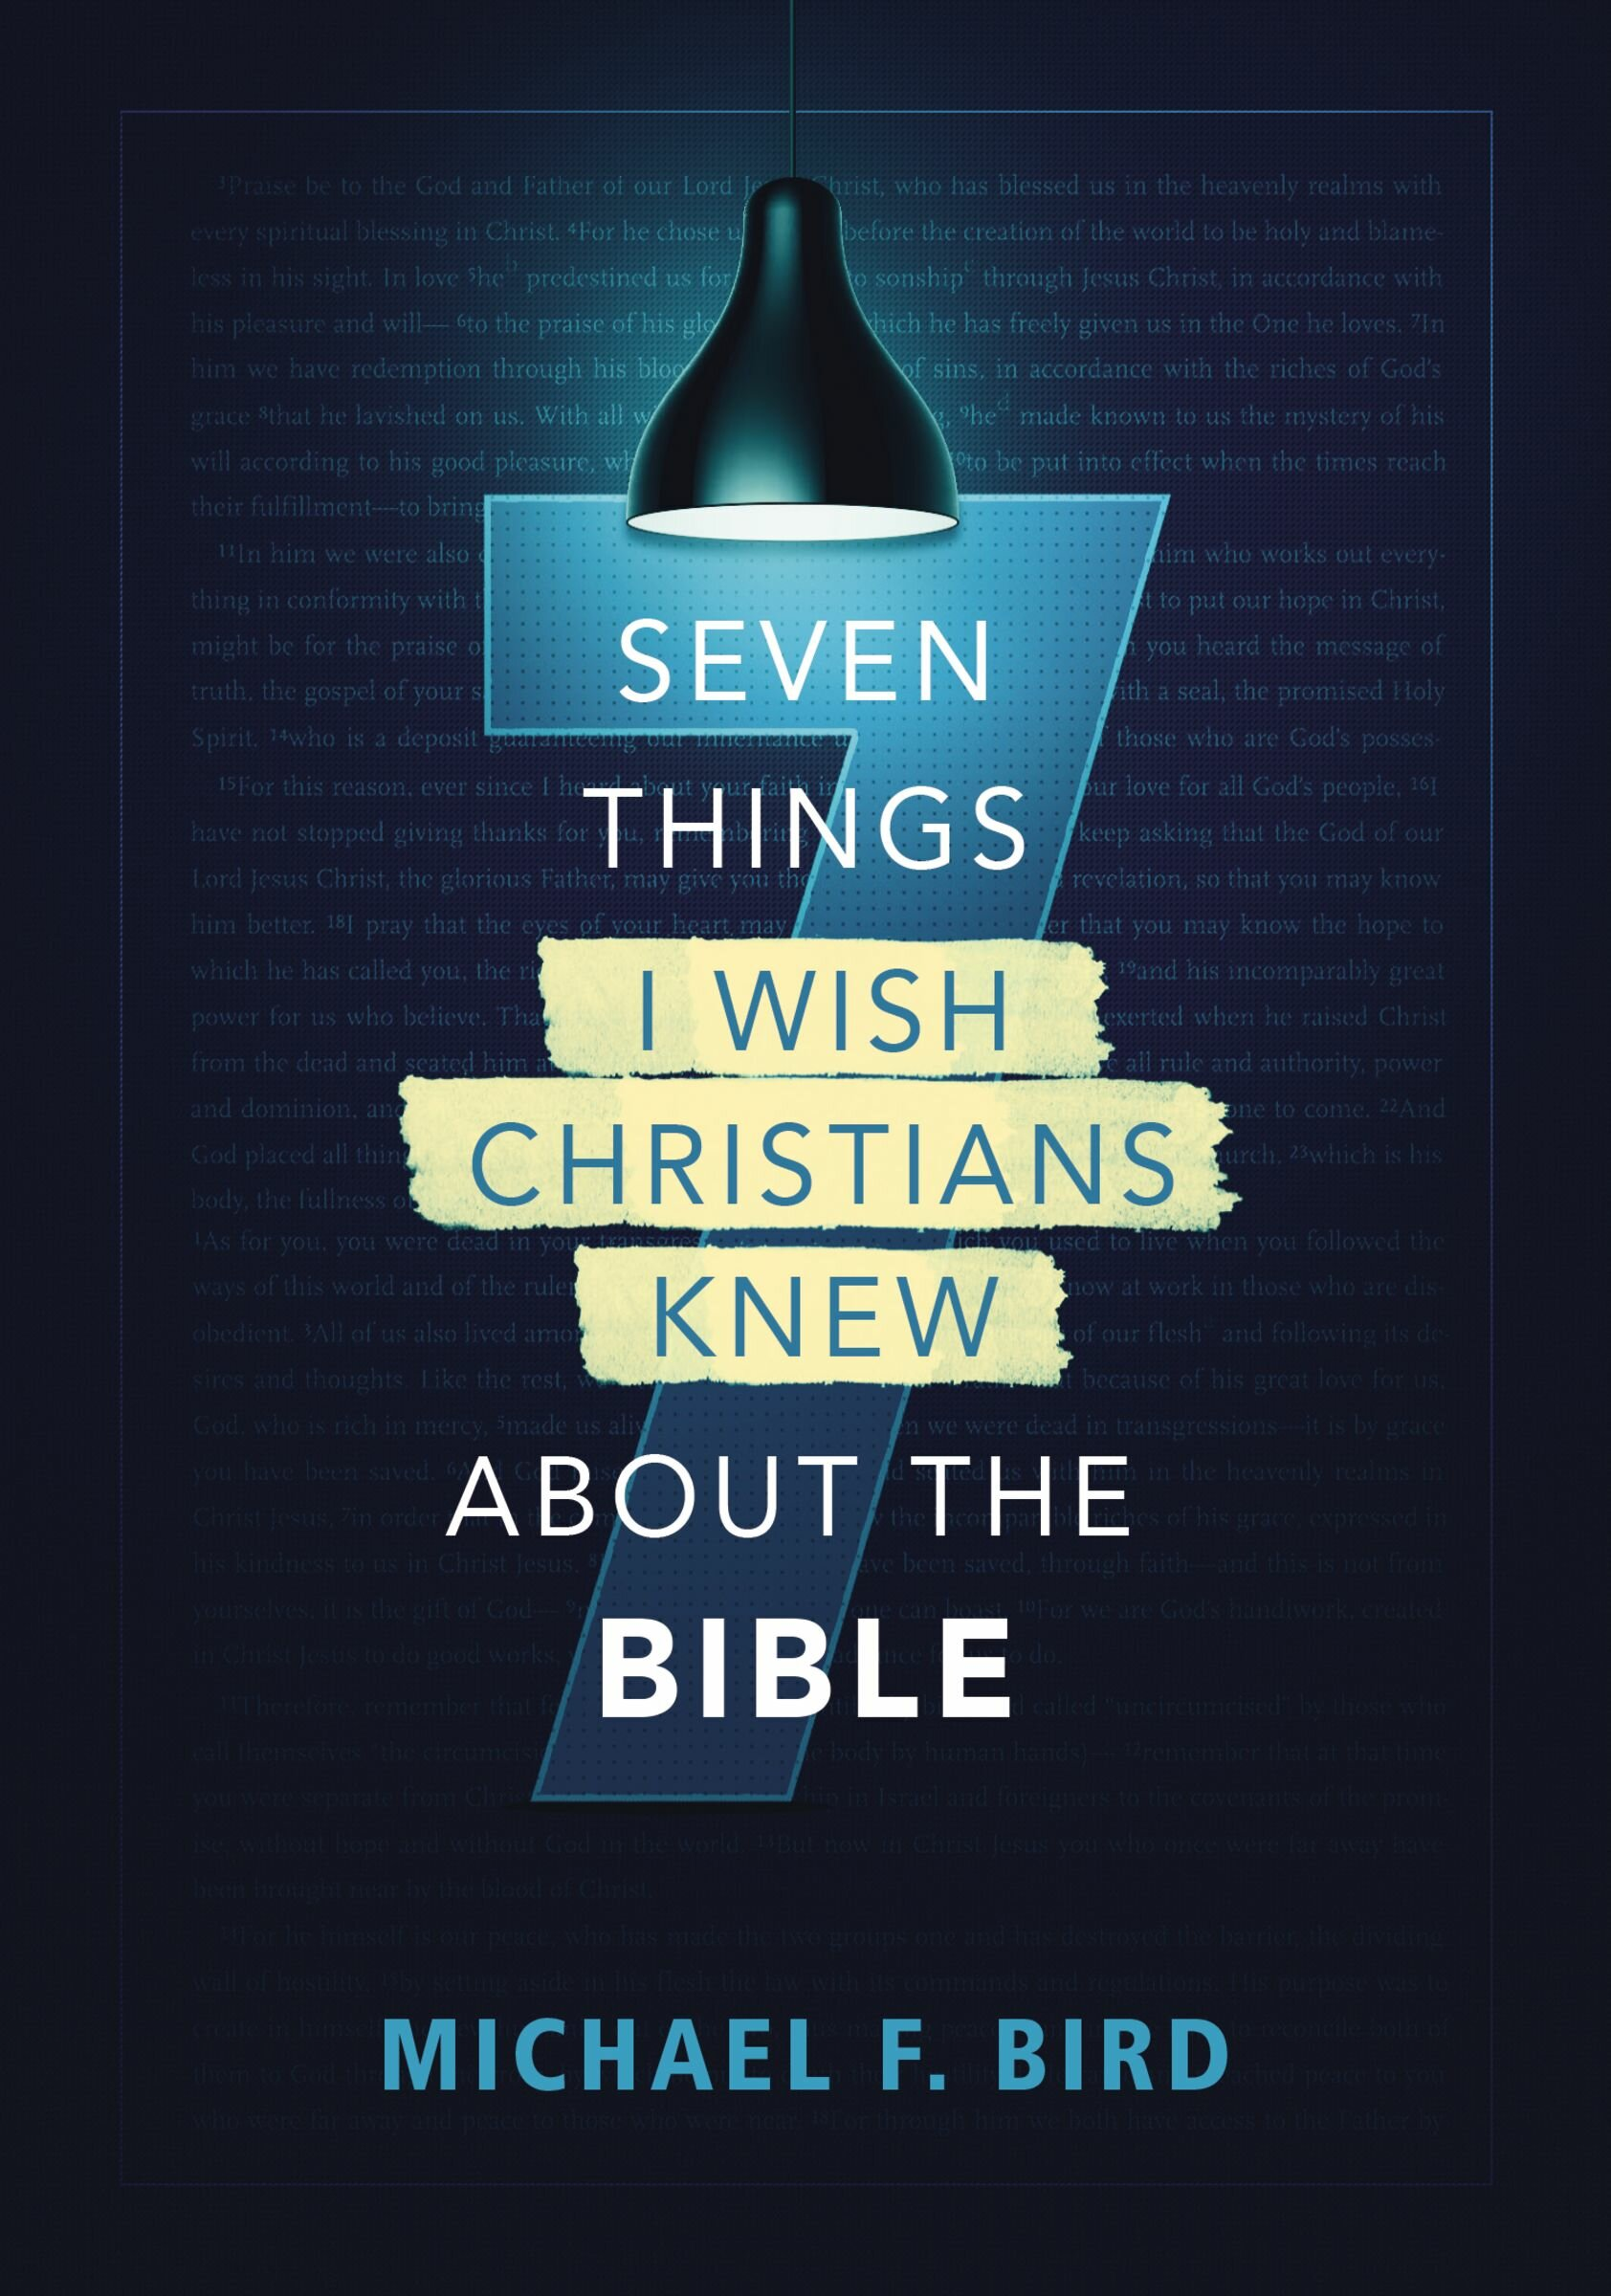 7 Things I Wish Christians Knew about the Bible